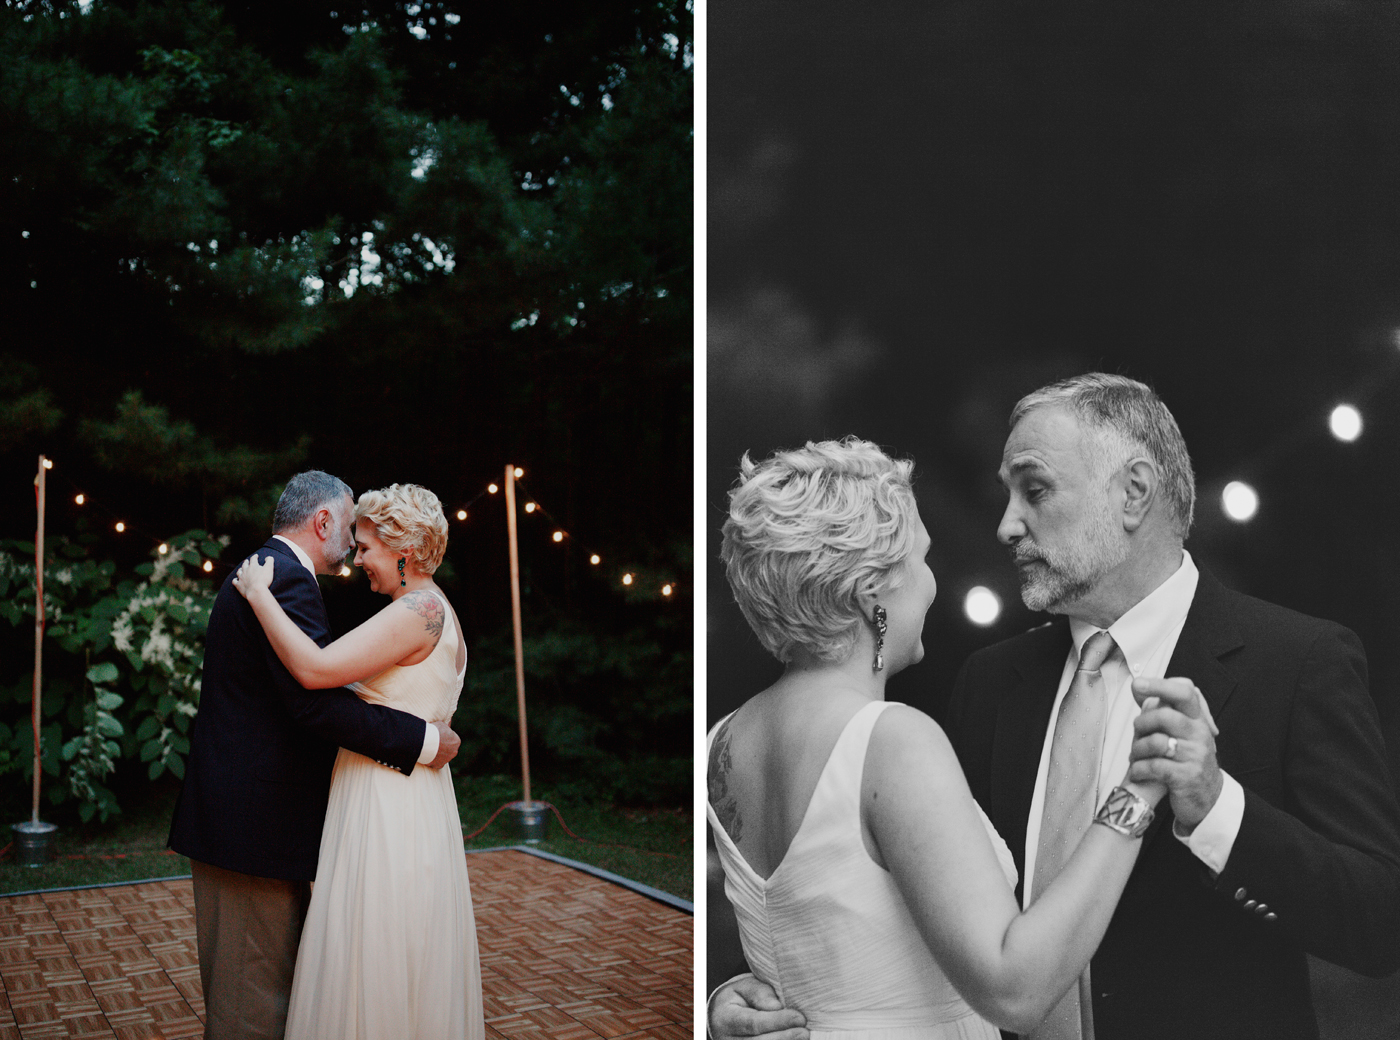 amandavanvels_backyardwedding_0811.jpg